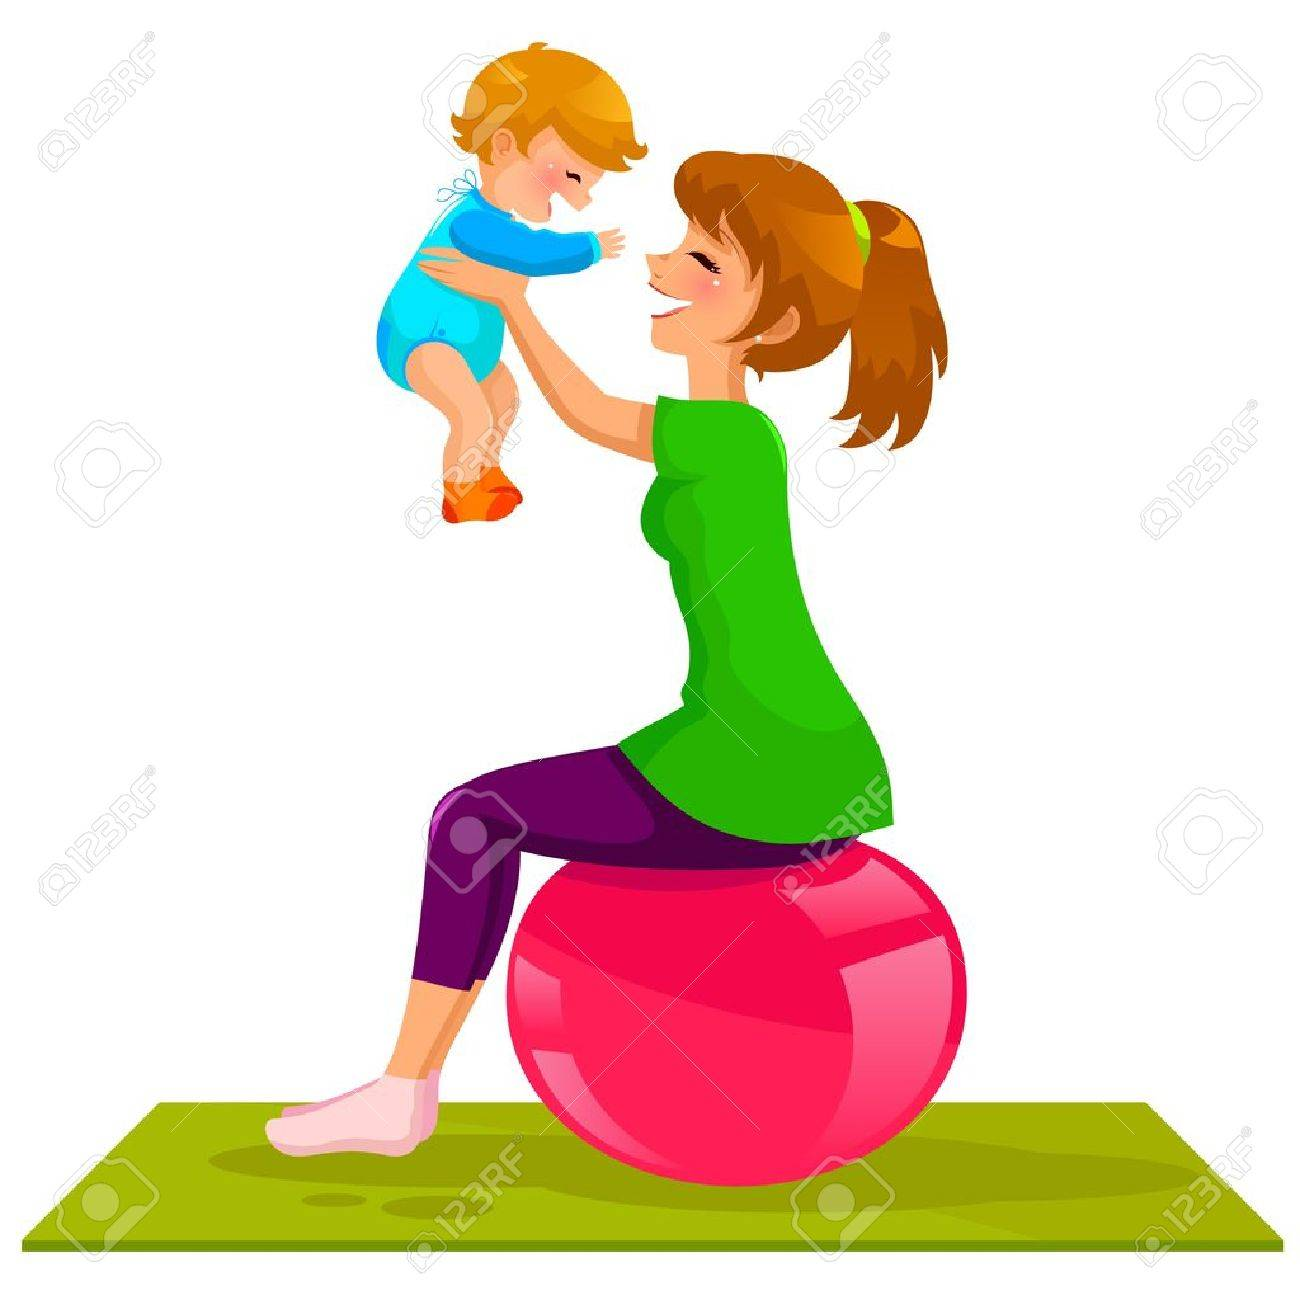 young mother playing with her baby on a gymnastic ball Stock Vector - 18430396